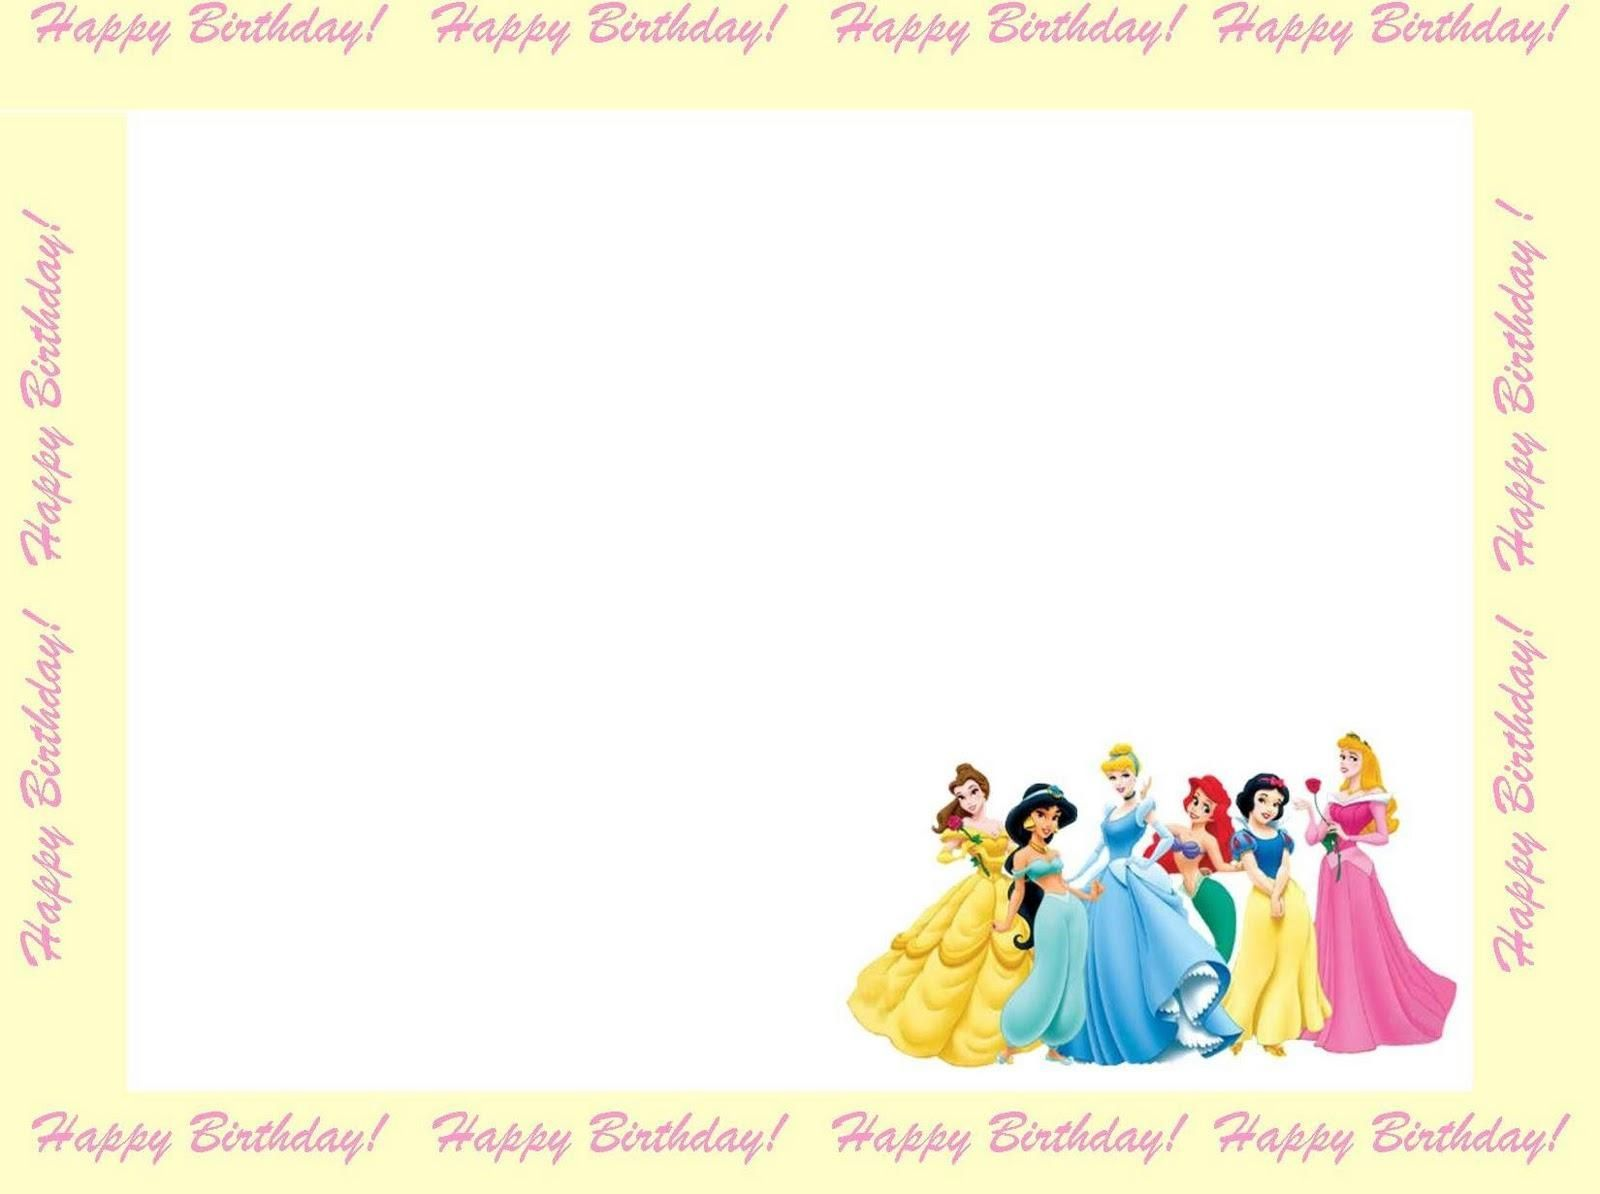 Birthday invitation princess birthday invitations free birthday invitation princess birthday invitations free invitation for you free invitation for you filmwisefo